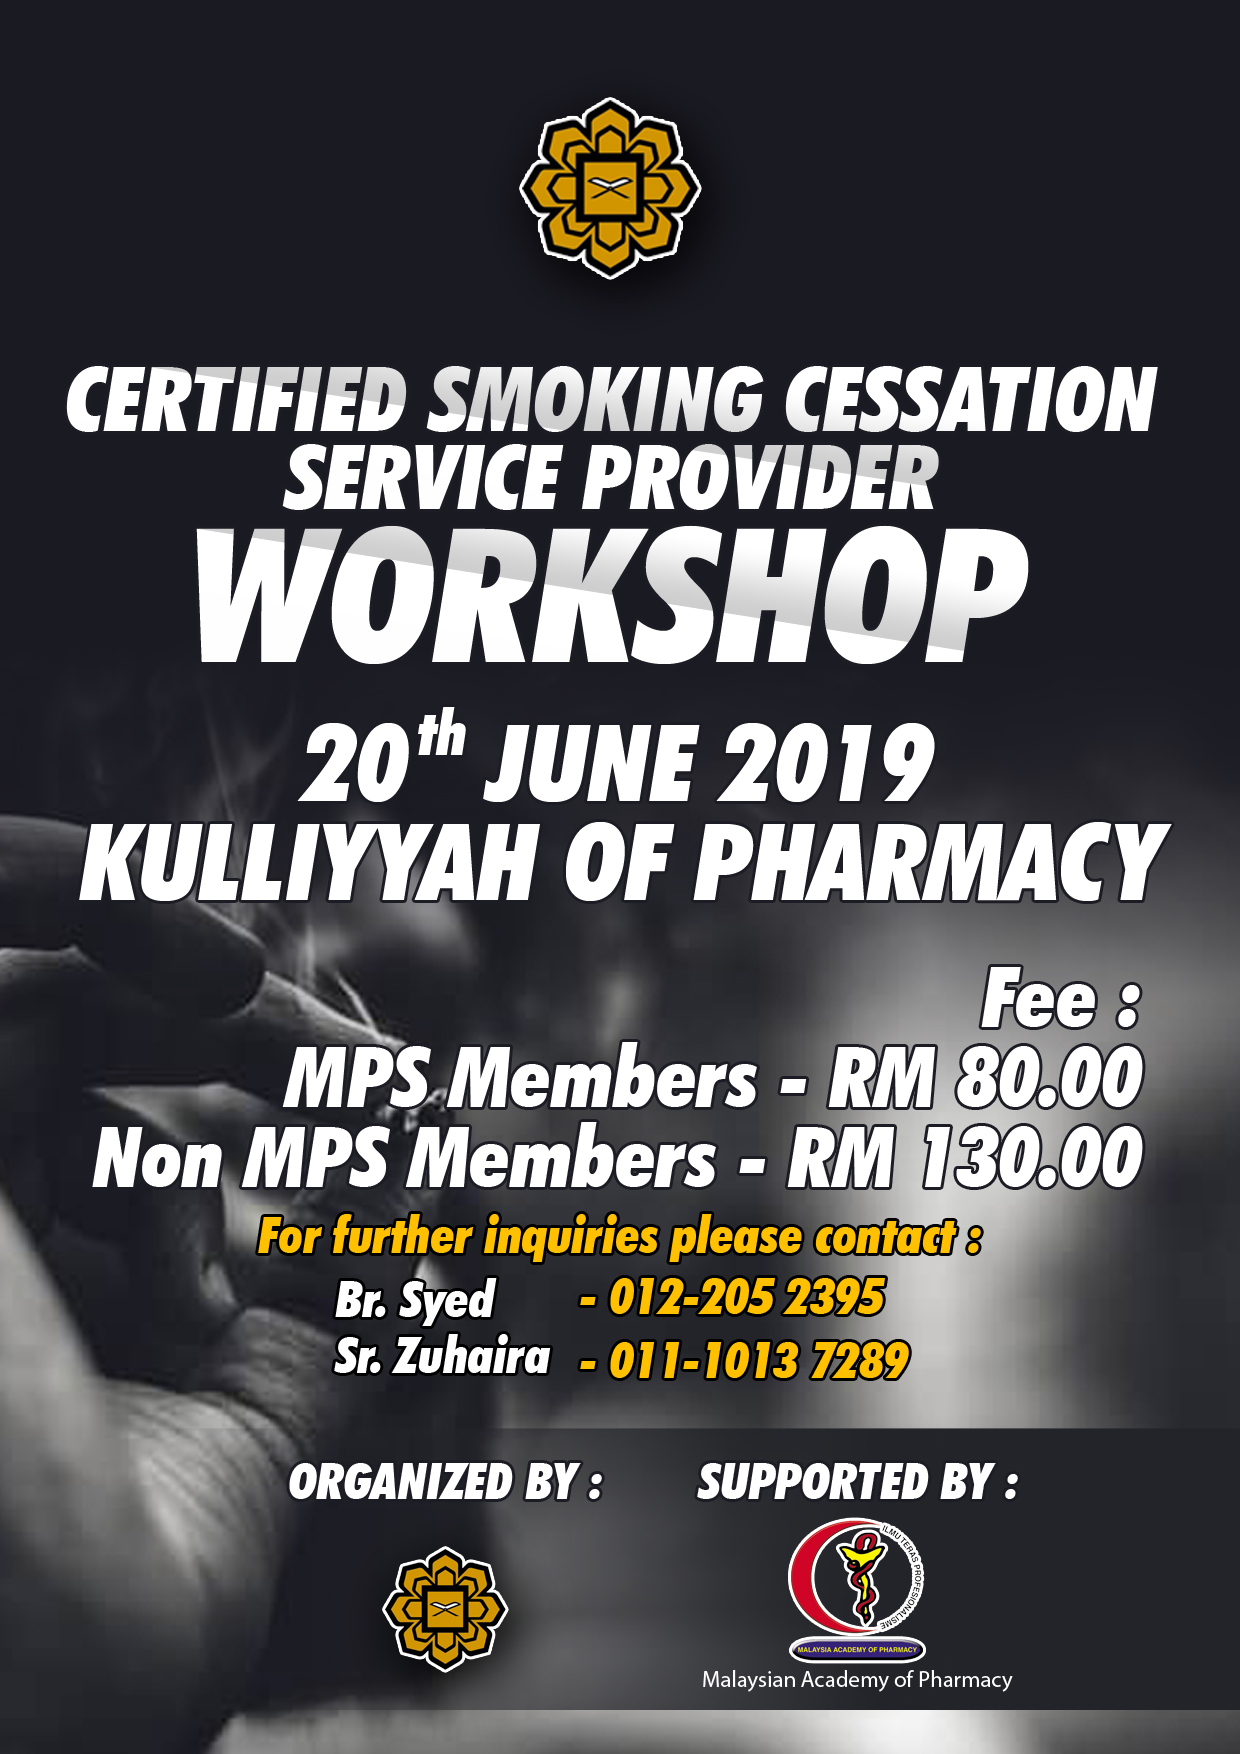 Certified Smoking Cessation Service Provider (CSCSP) Workshop